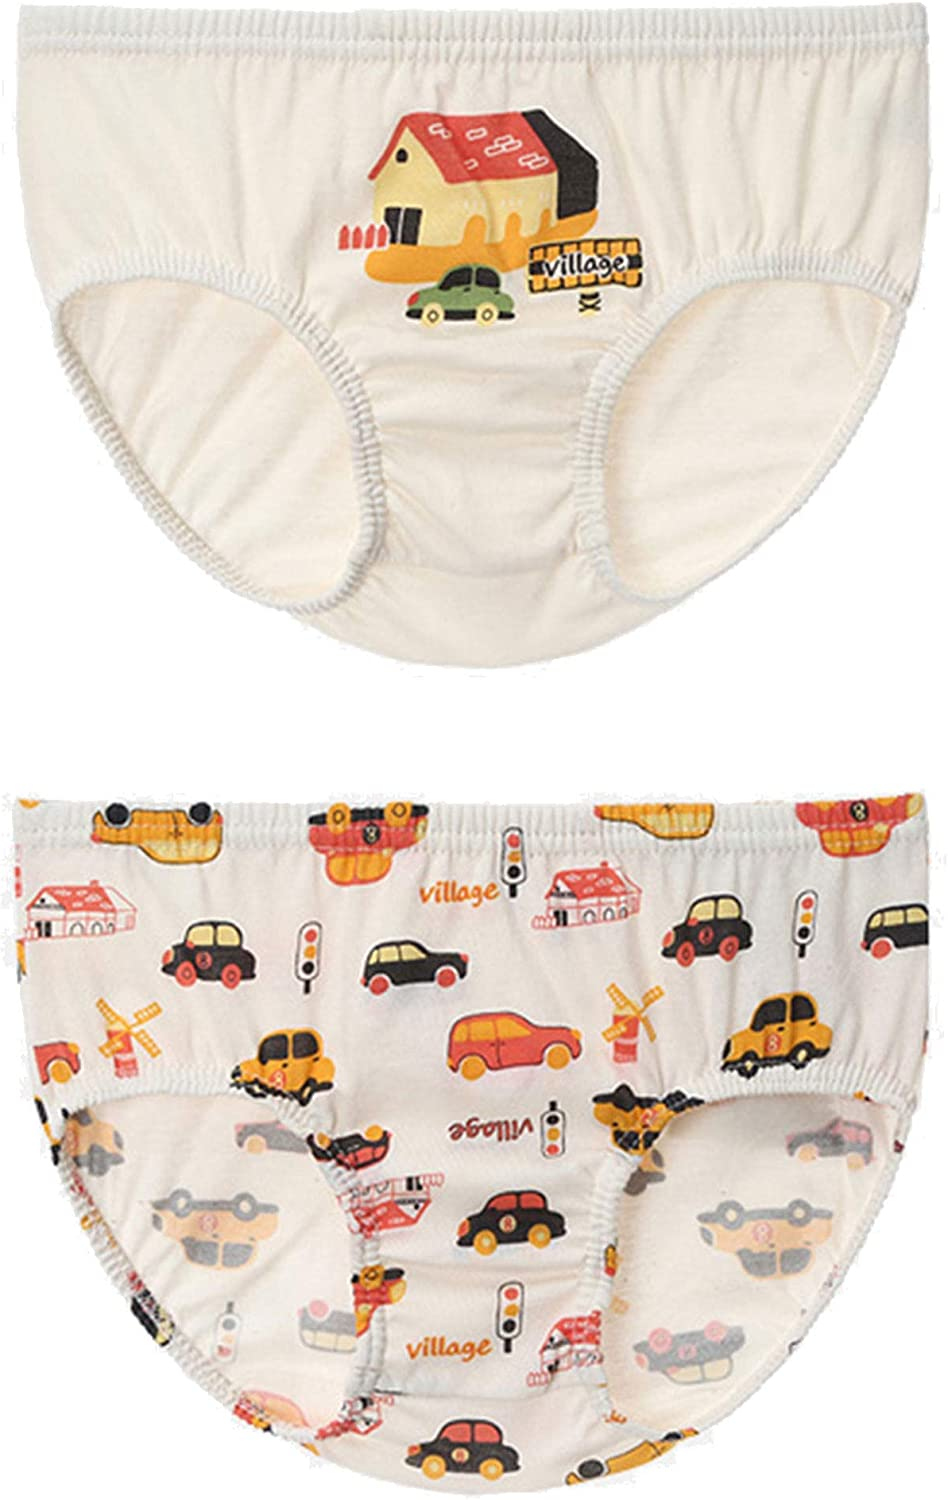 HiOrganic 100/% Organic Cotton Toddler Boys Underwear Panty 2 Pack 3T-7